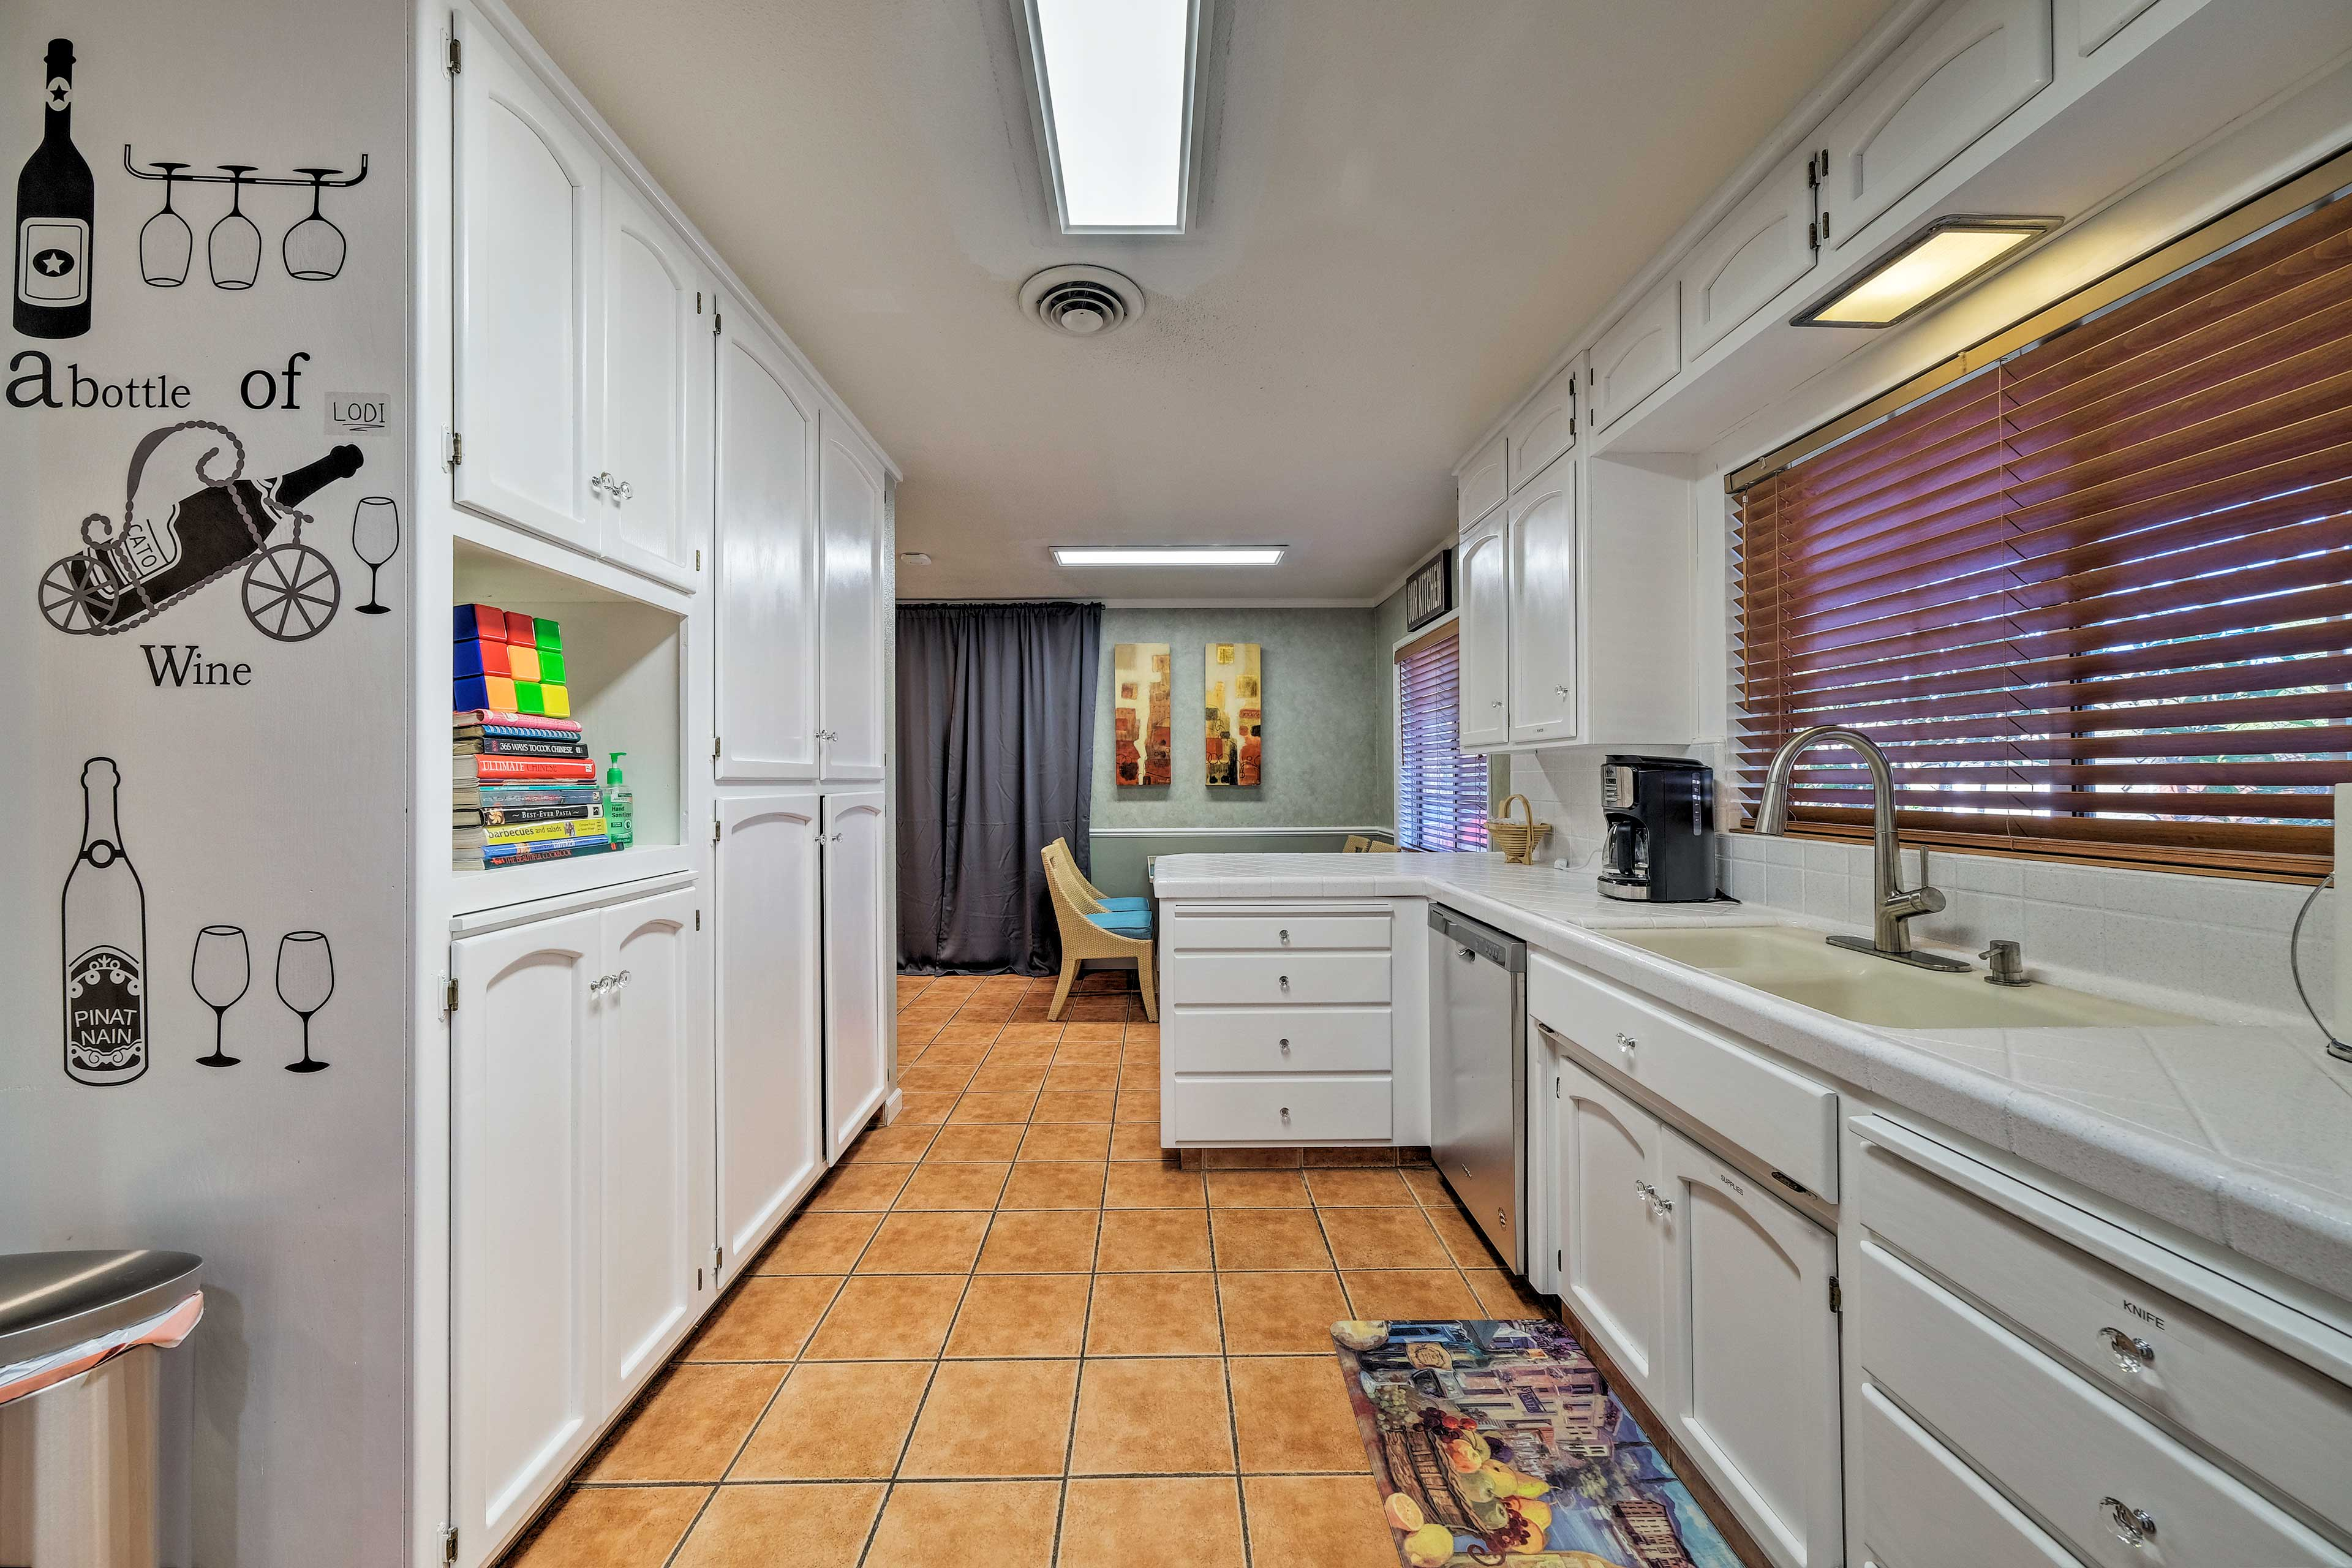 Kitchen | Fully Equipped | Standard Drip Coffee Maker